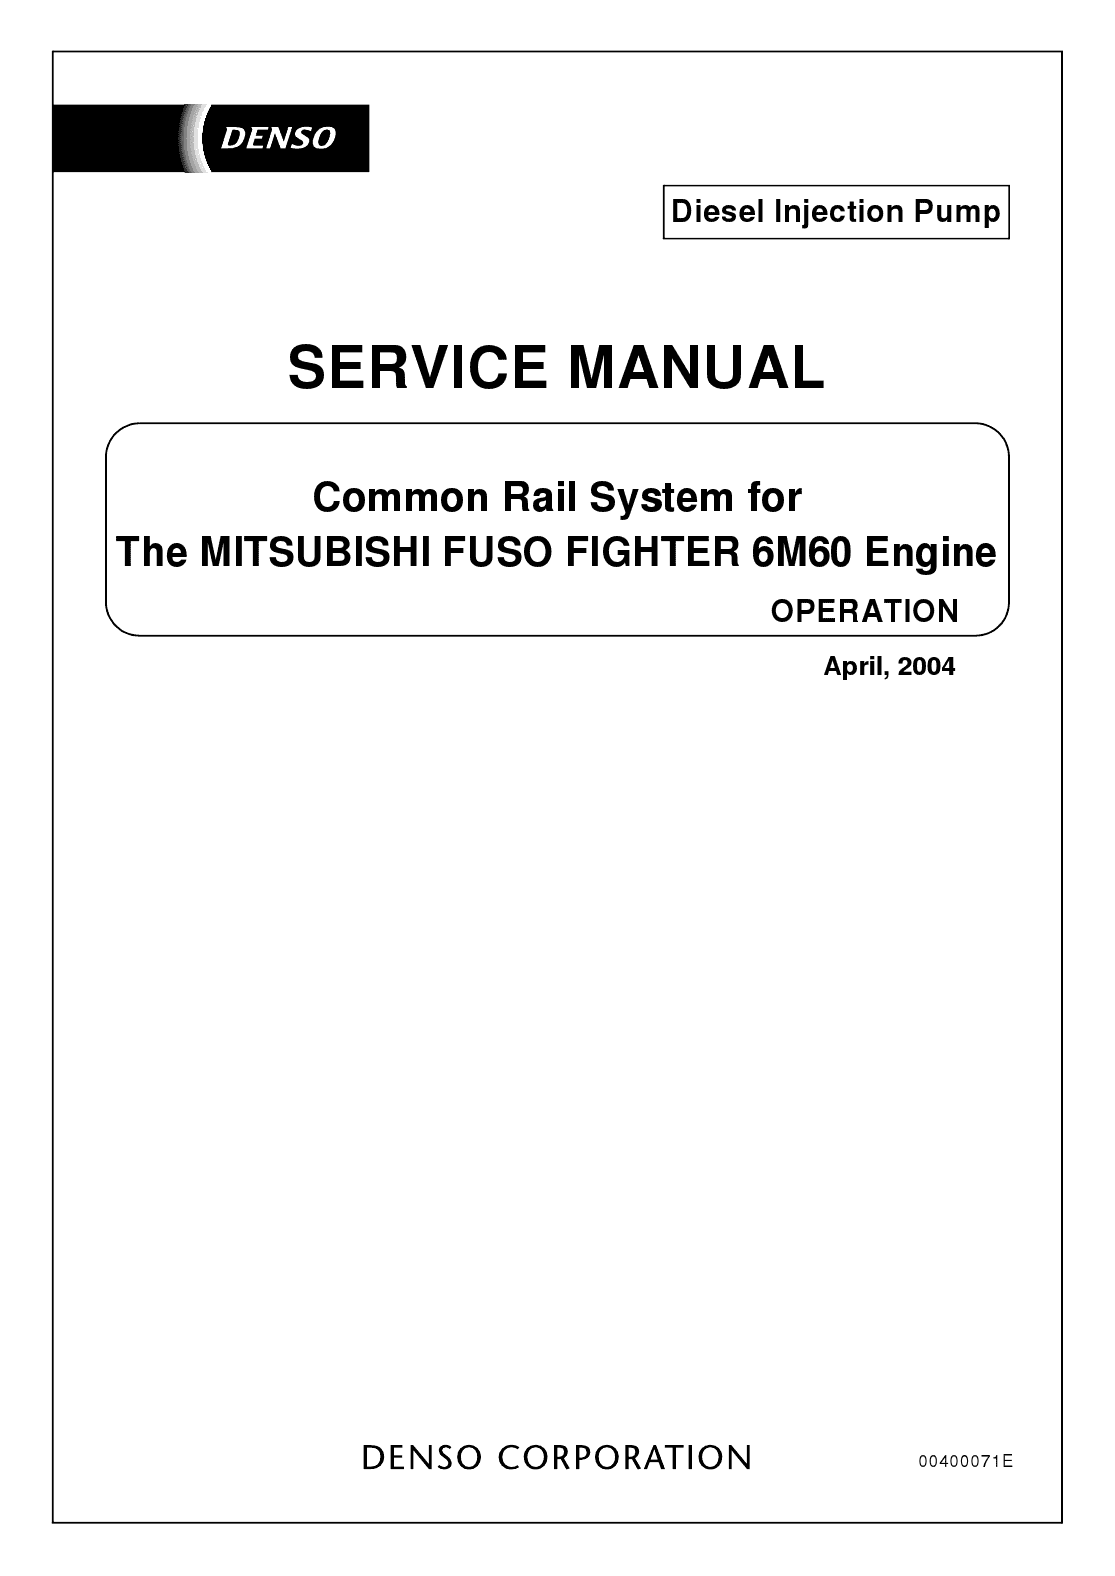 This manual describes the common rail system installed in the 6M60 engine  of the Mitsubishi Fuso Fighter. The most